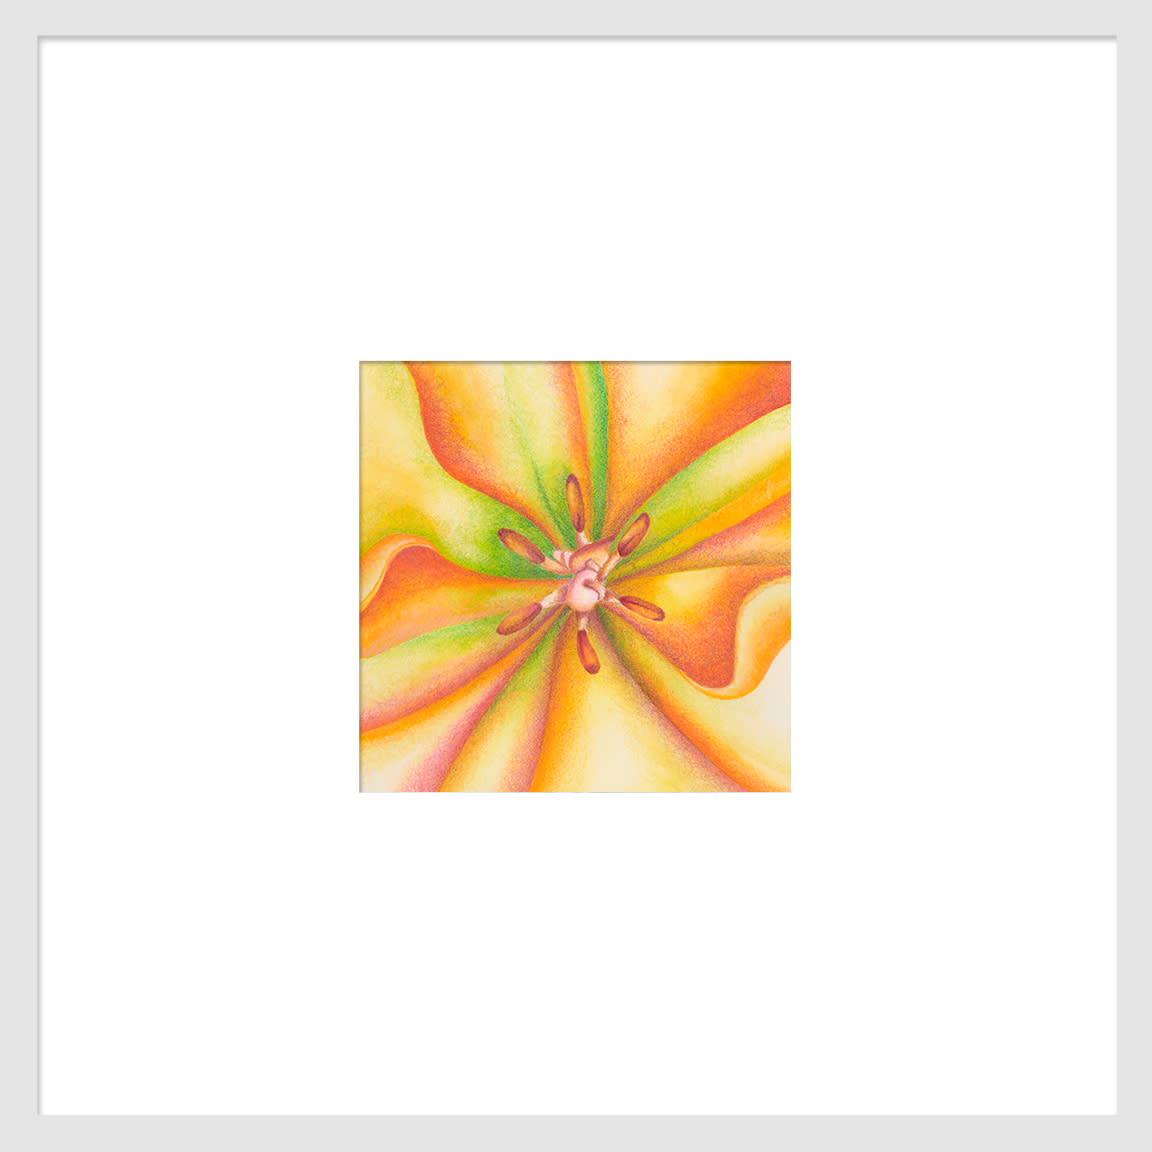 100702 orange tulip series  2 6x6 matted to 16x16x72 hwk2p4